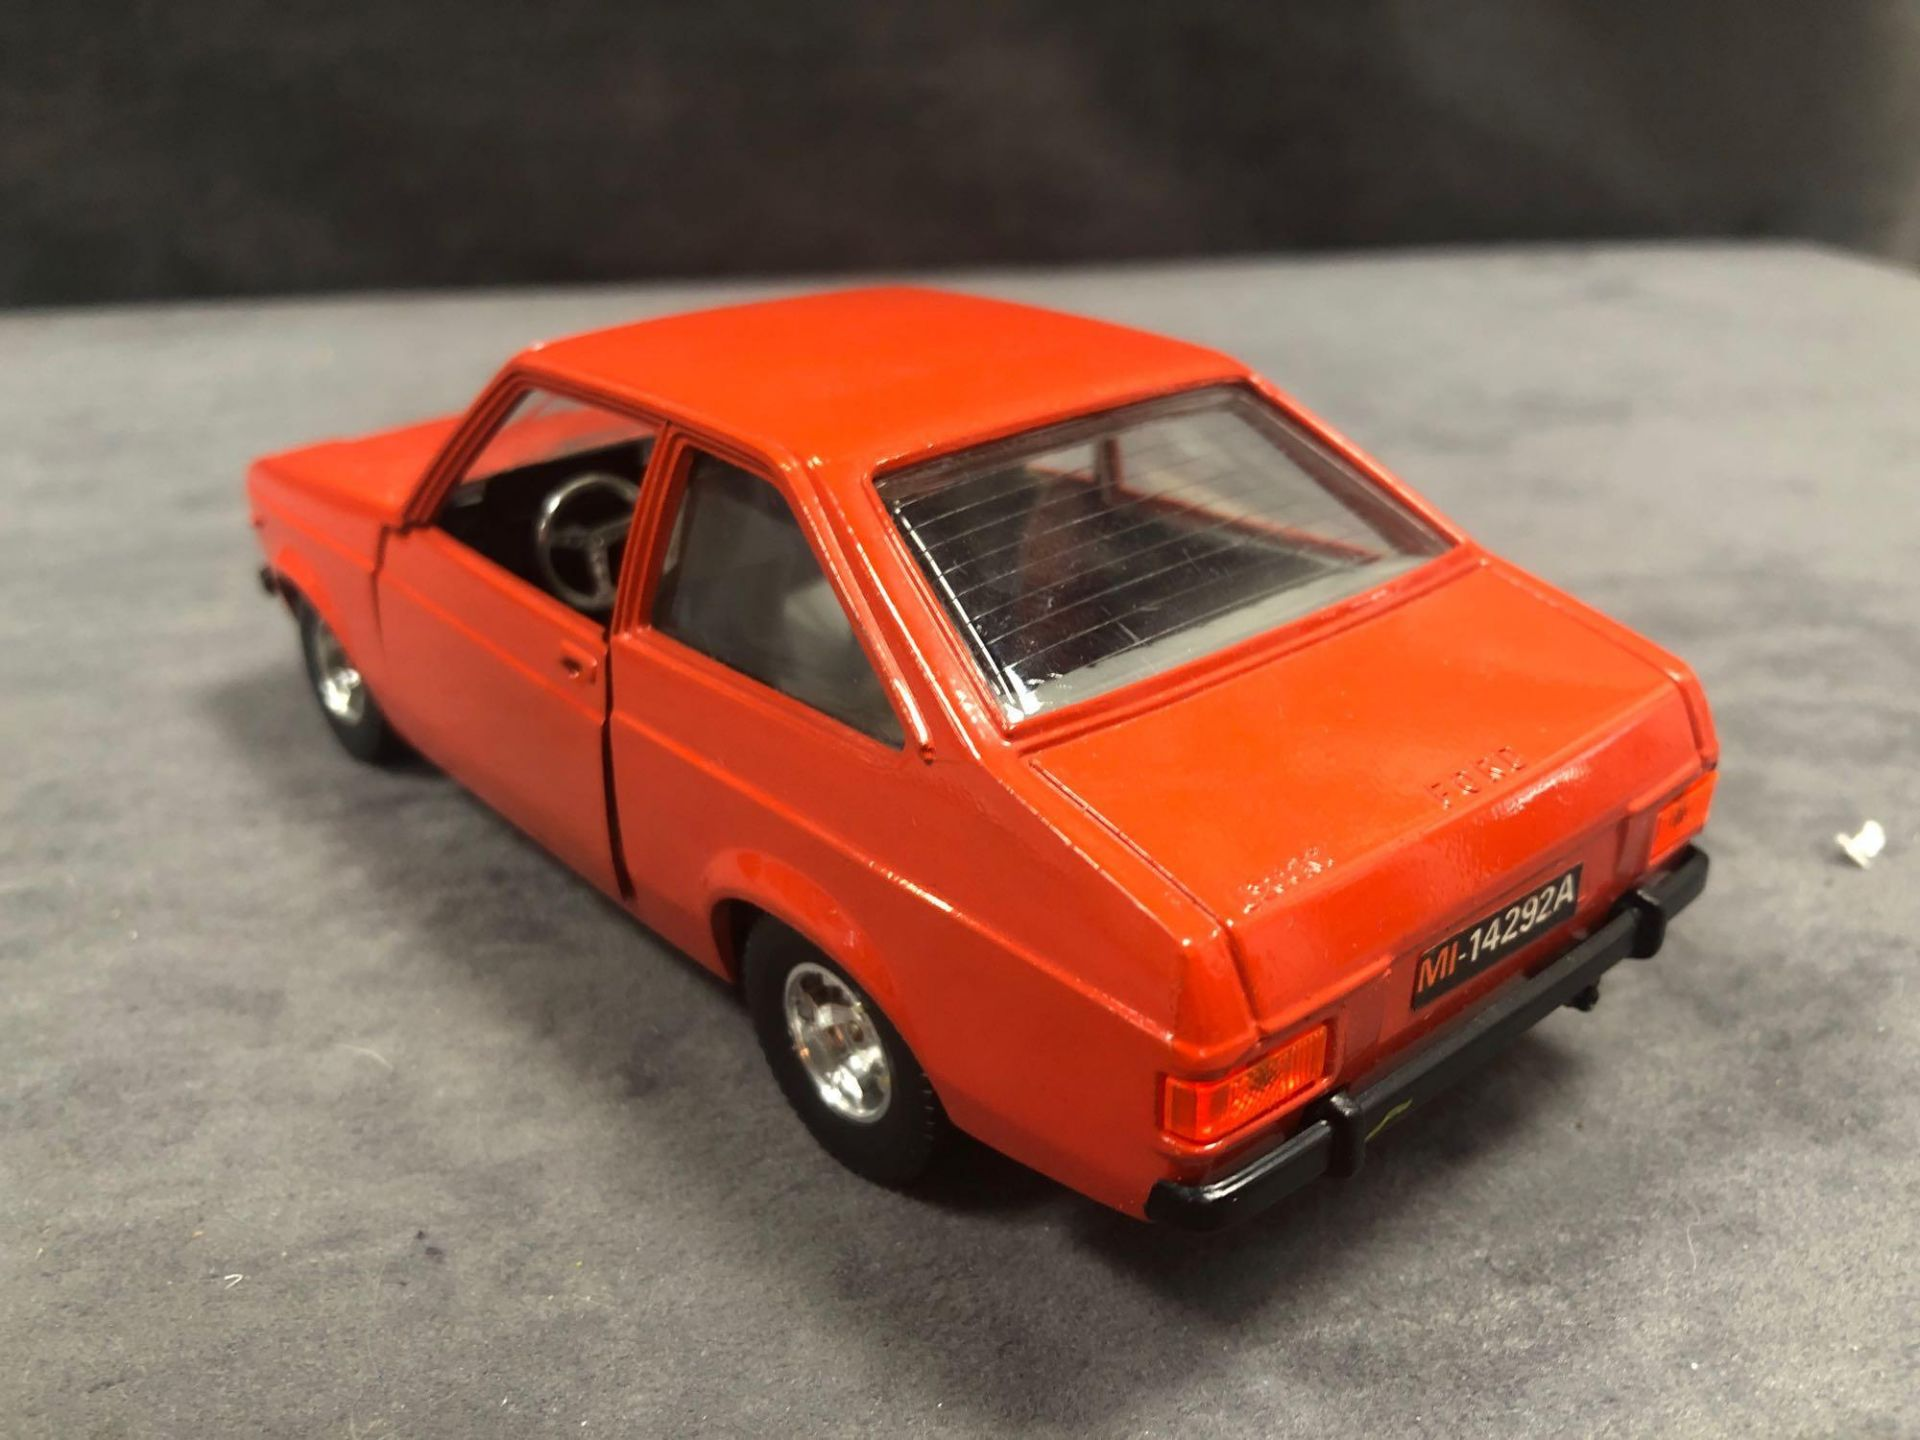 Bburago Ford Diecast Escort 1100L In Orange Red No Box - Image 3 of 3